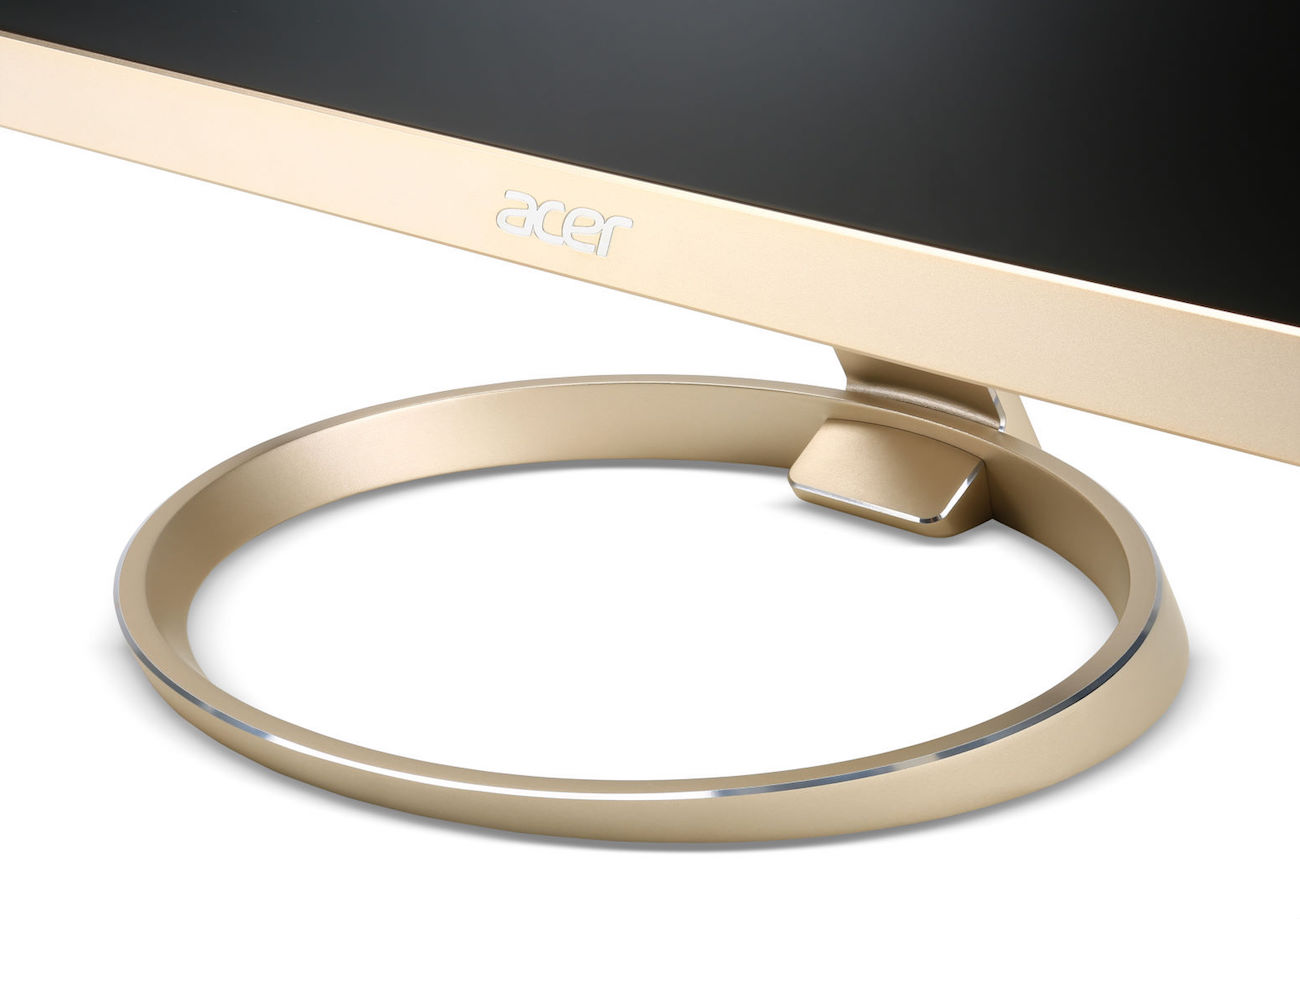 acer-h7-the-worlds-first-usb-type-c-display-02